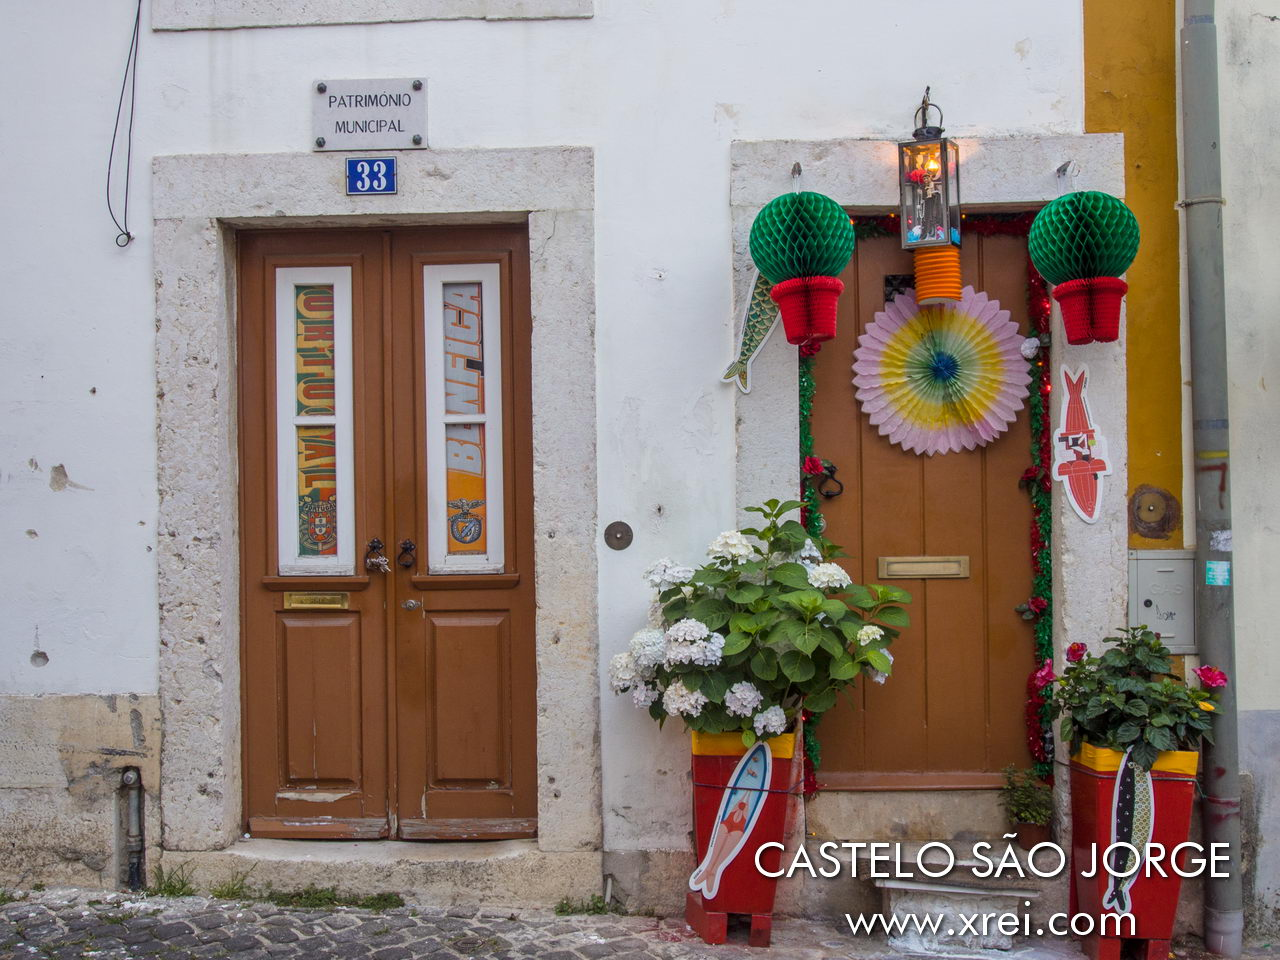 building declared a municipal heritage. The Castelo district and the surrounding neighborhoods decorate the streets during the popular festivities in Lisbon. The residents of these neighborhoods are the big fans of Lisbon parties, and it is in these neighborhoods that the parties take place